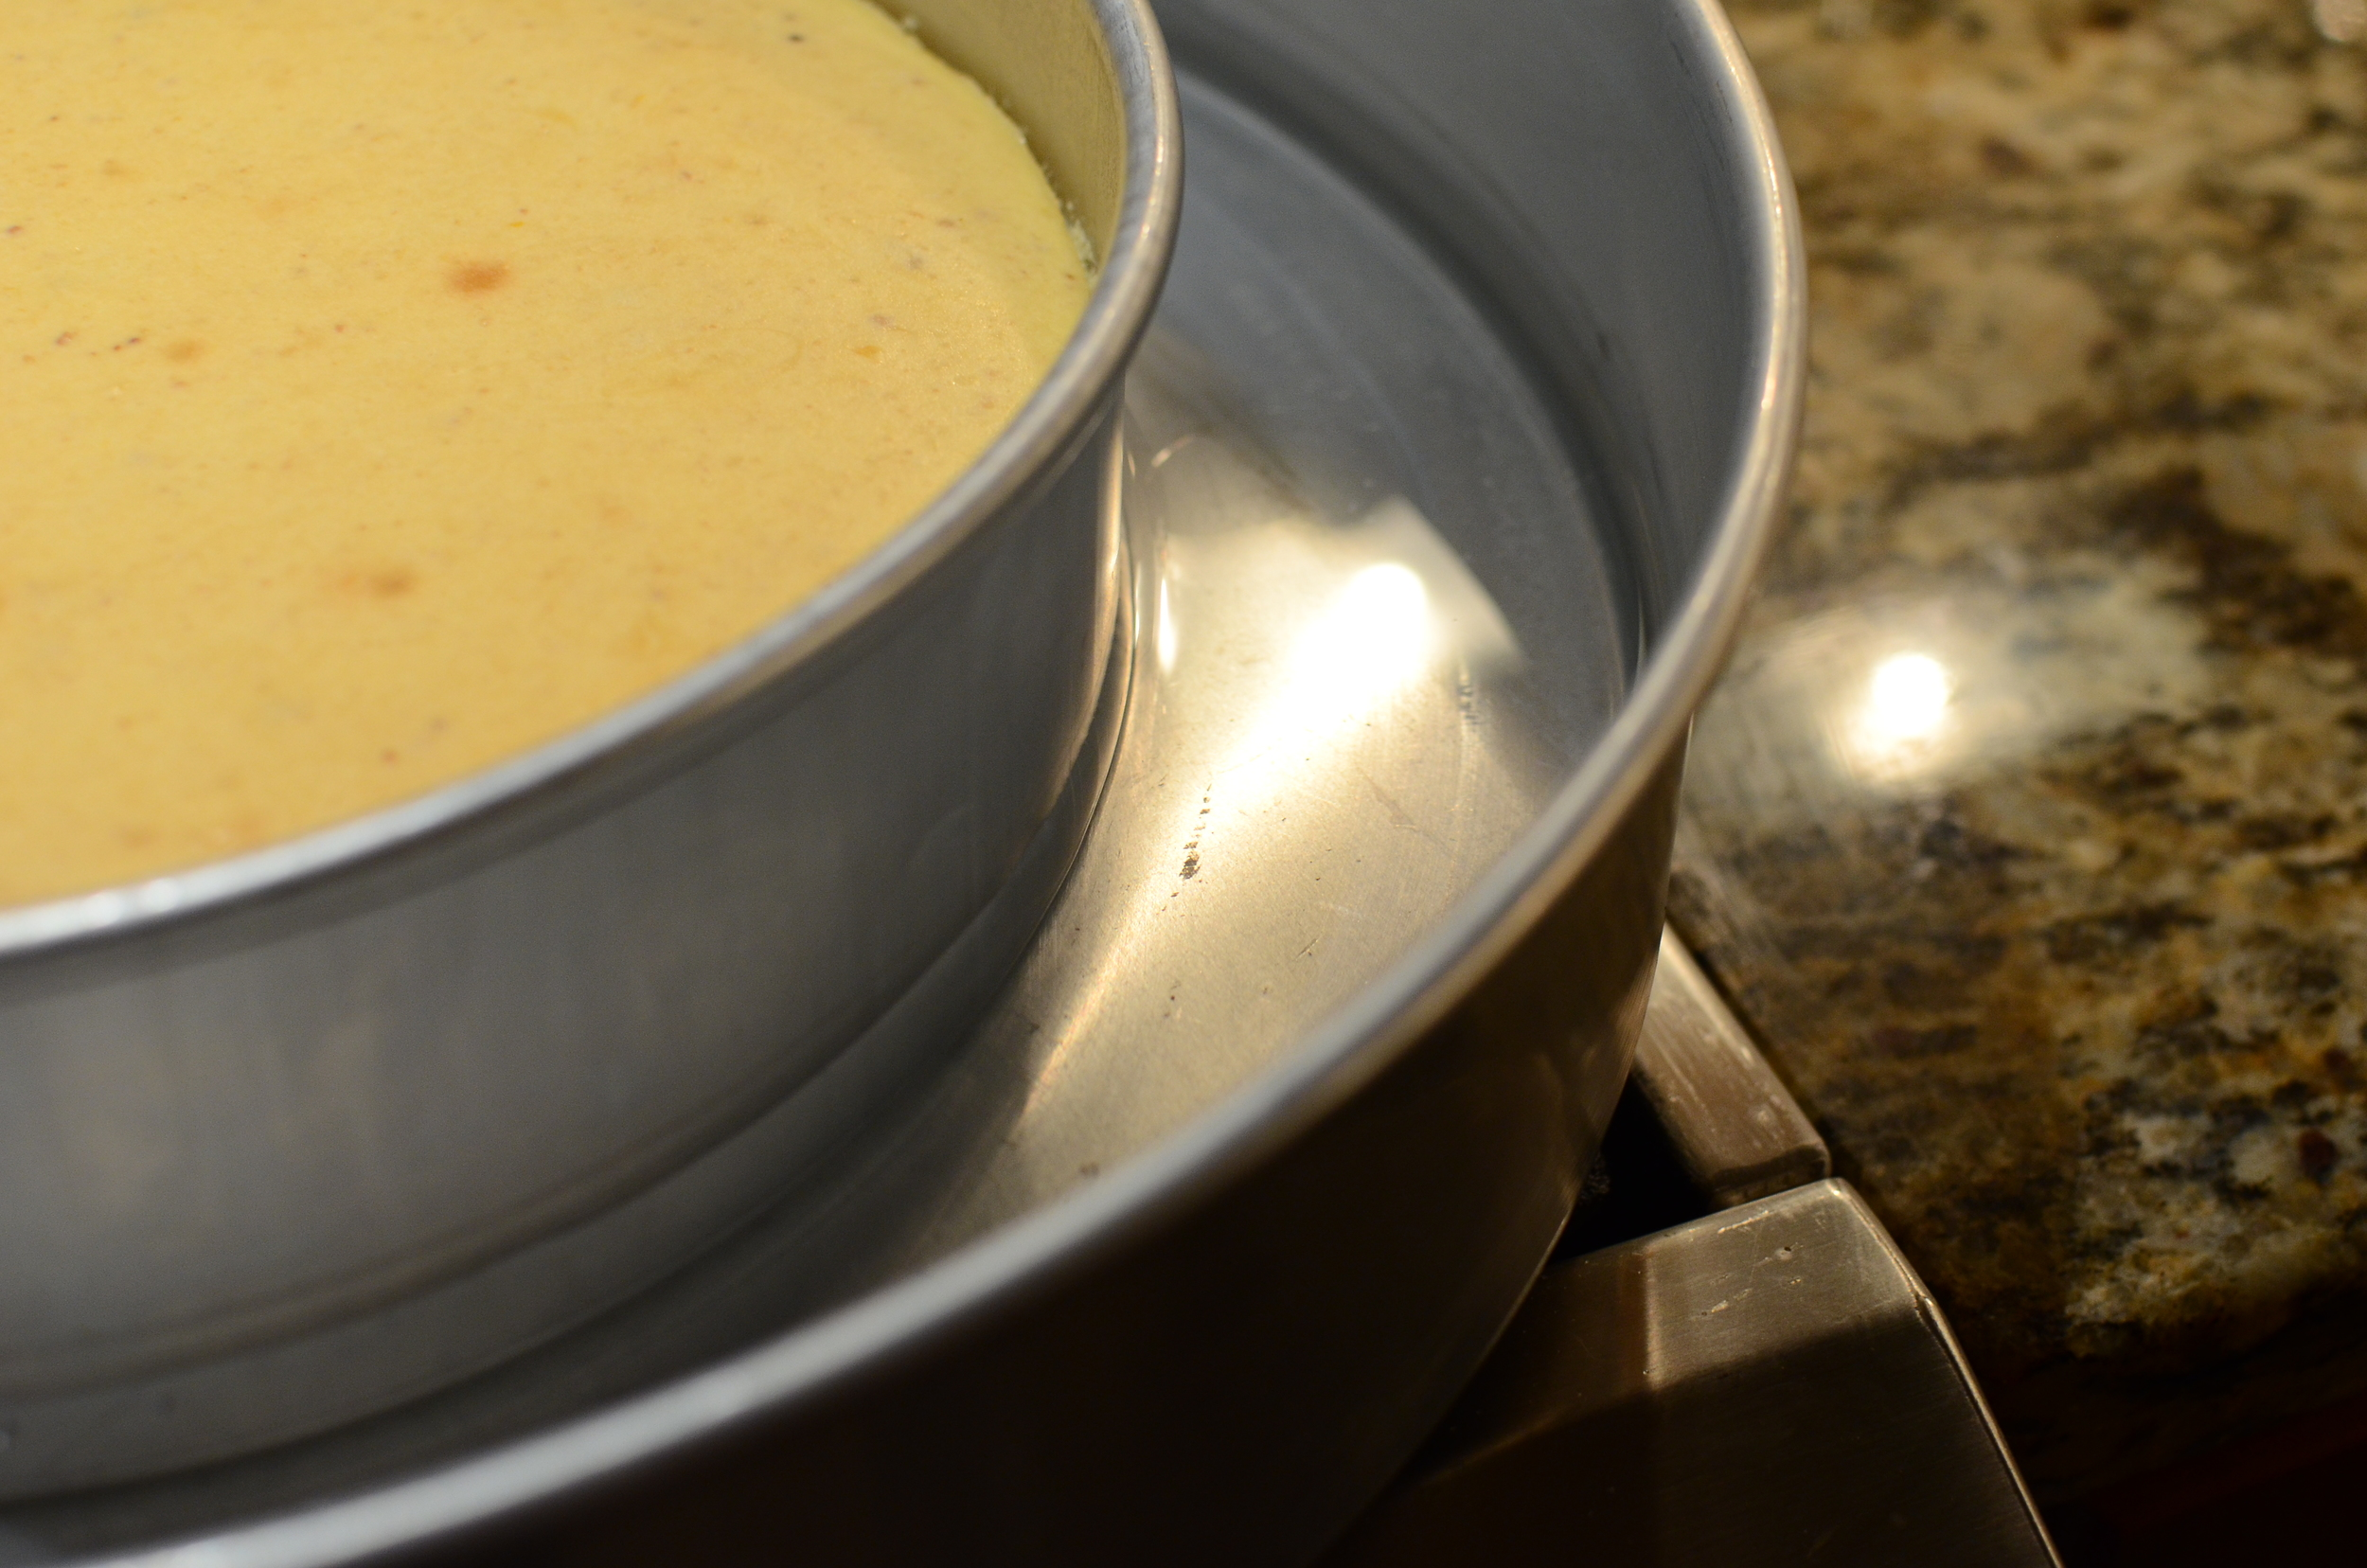 Bake as directed, the turn off the oven and cool for an hour without opening the oven door.  Then remove from the oven and cool on the counter for 1-2 hours =.  This will cool the cheesecake slowly, preventing it from cracking.  Chill the cheesecake for at least 4 hours, but overnight is even better.  Cheesecakes will pick up off flavors from the fridge, so I place mine in an airtight container to chill.    I unmolded the cheesecake and place it on a cardboard cake round.  If I were to do it again, I'd use a coated cardboard because the one I used was uncoated and it quickly became saturated with moisture from the cheesecake.